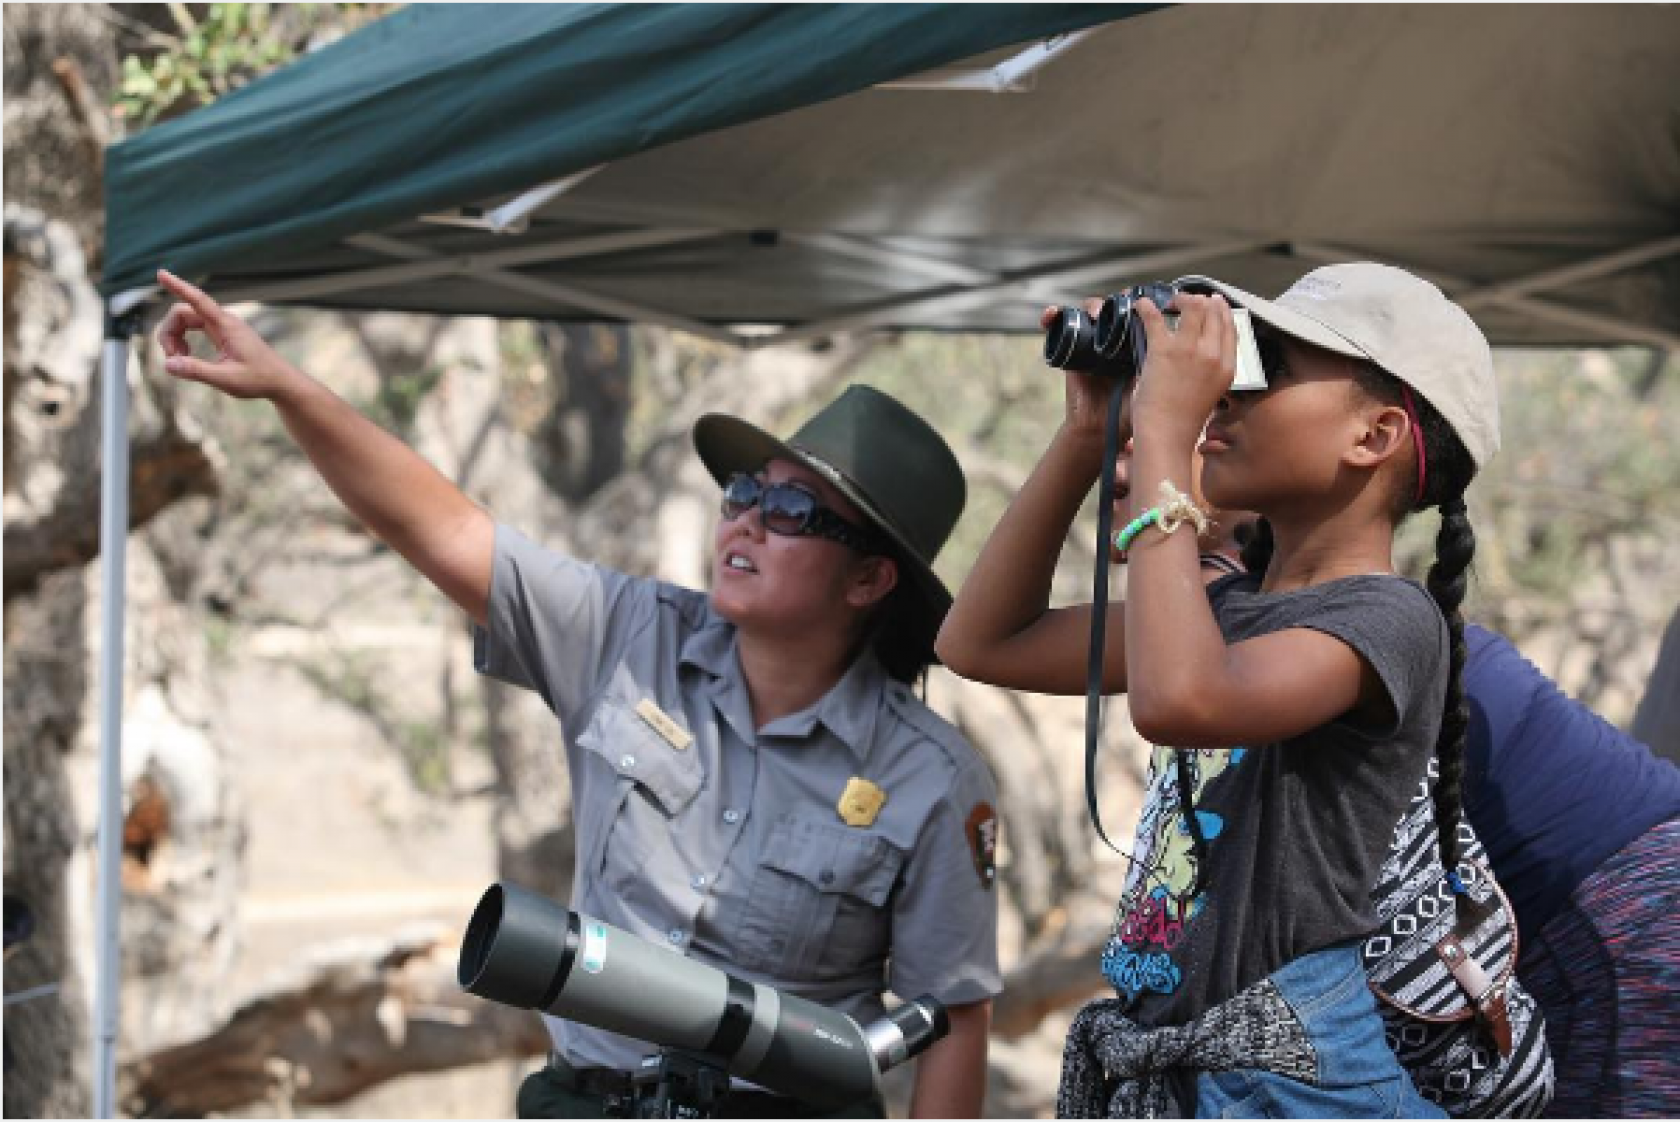 Park ranger pointing to sky while child looks through binoculars